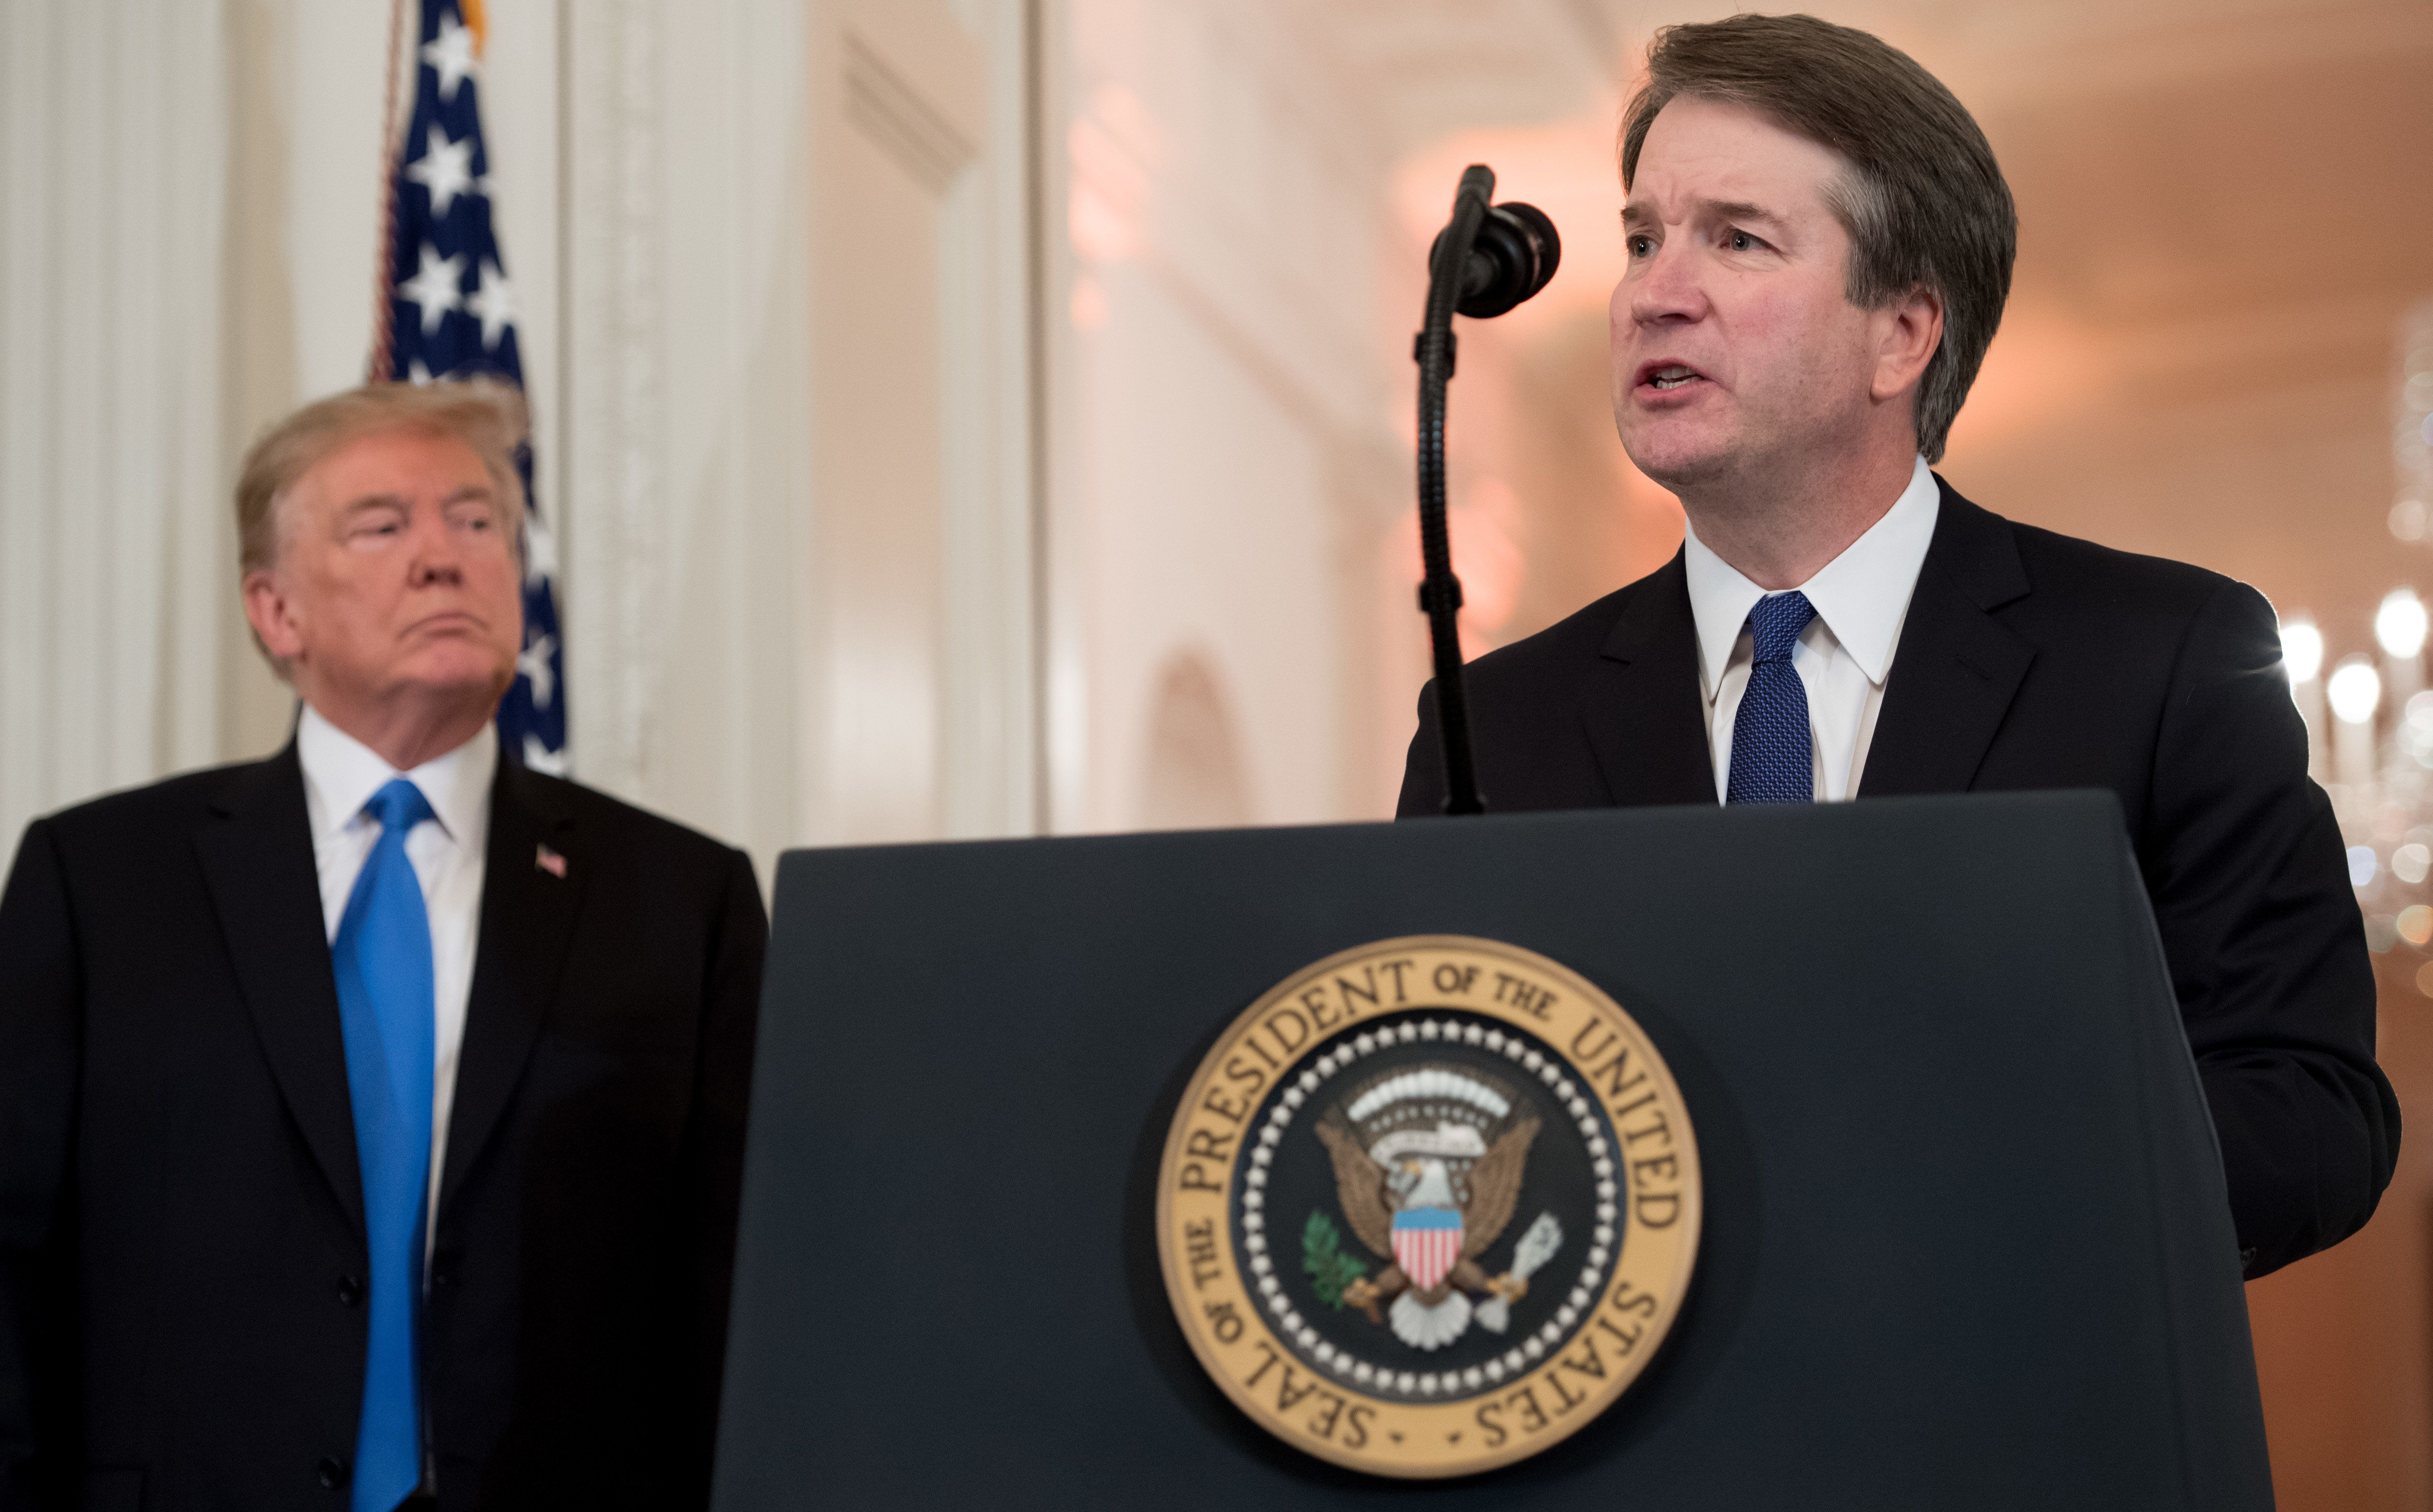 US Judge Brett Kavanaugh speaks after being nominated by US President Donald Trump (L) to the Supreme Court in the East Room of the White House on July 9, 2018 in Washington, DC. (Photo by SAUL LOEB / AFP)        (Photo credit should read SAUL LOEB/AFP/Getty Images)